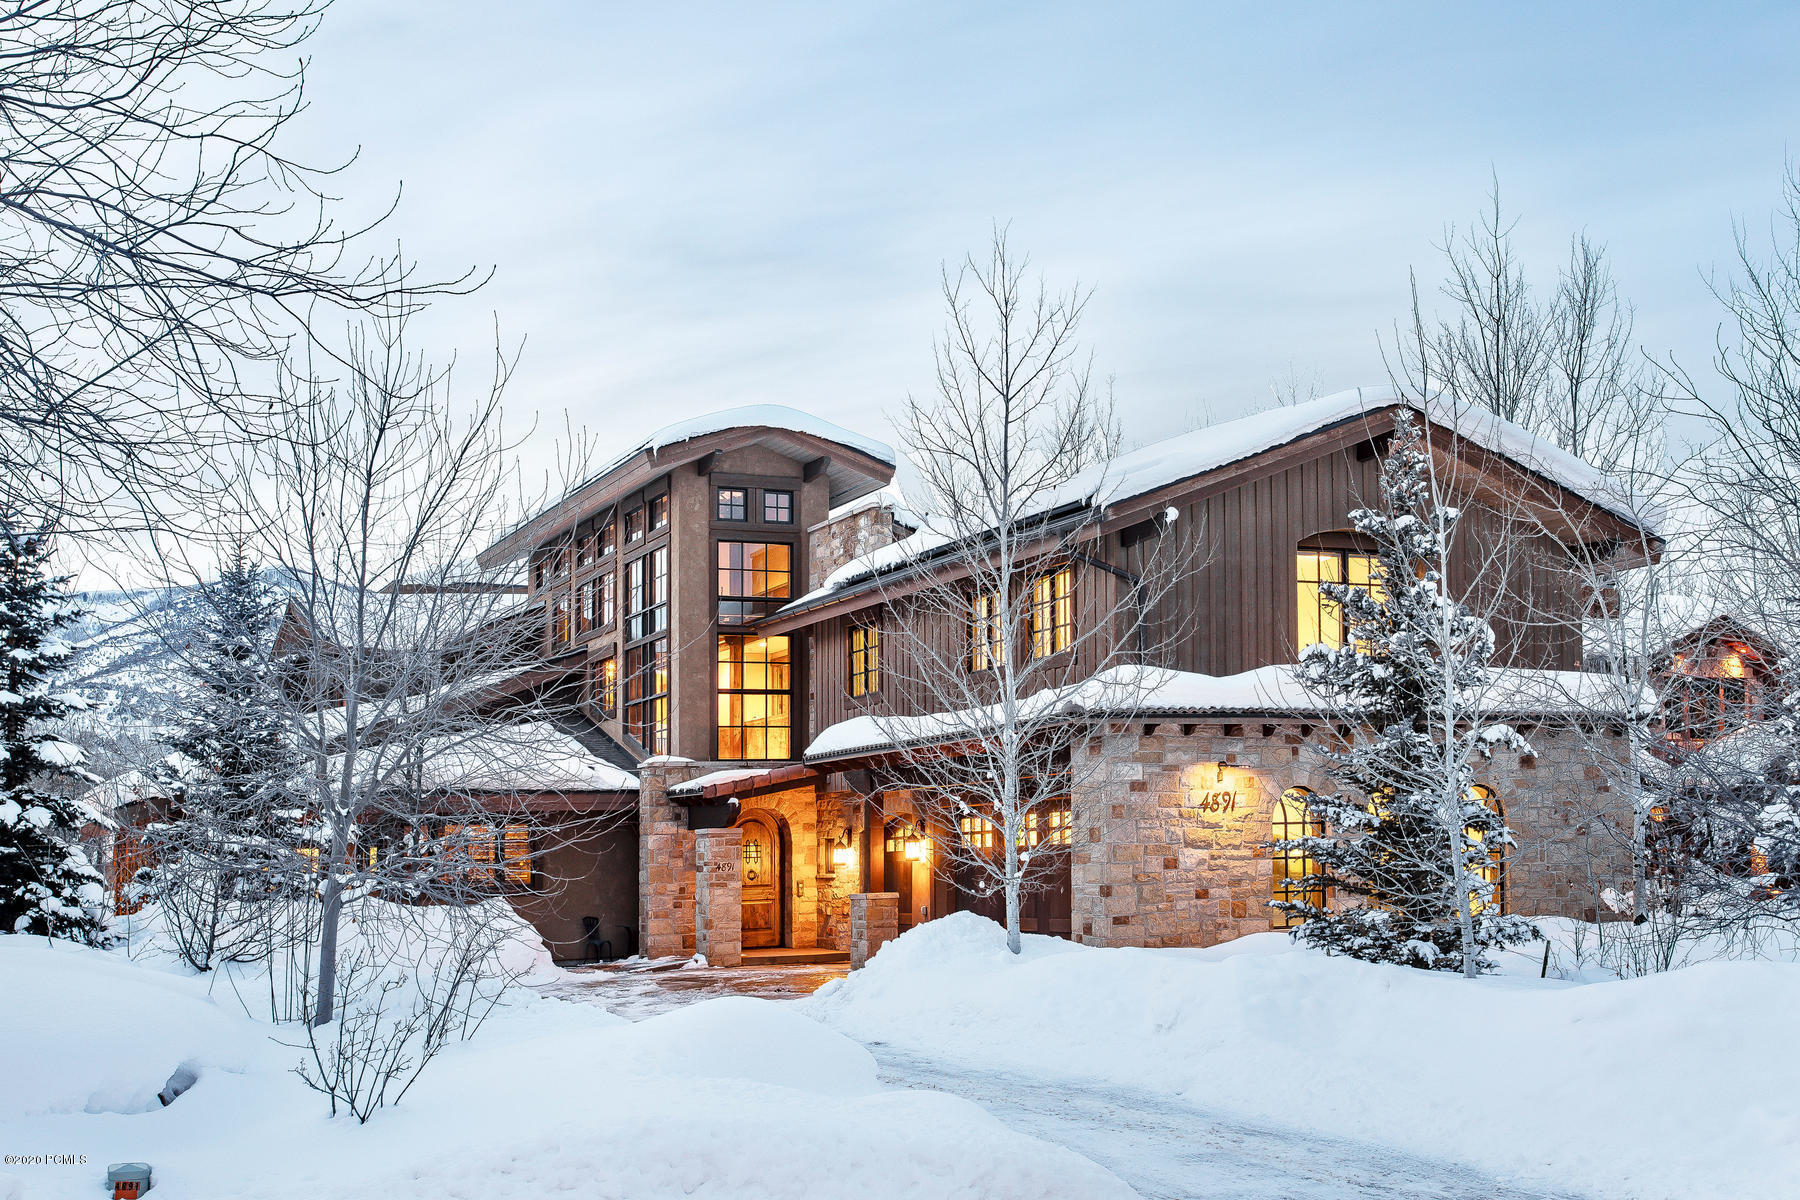 4891 Last Stand, Park City, Utah 84098, 4 Bedrooms Bedrooms, ,6 BathroomsBathrooms,Single Family,For Sale,Last Stand,20190109112430415765000000